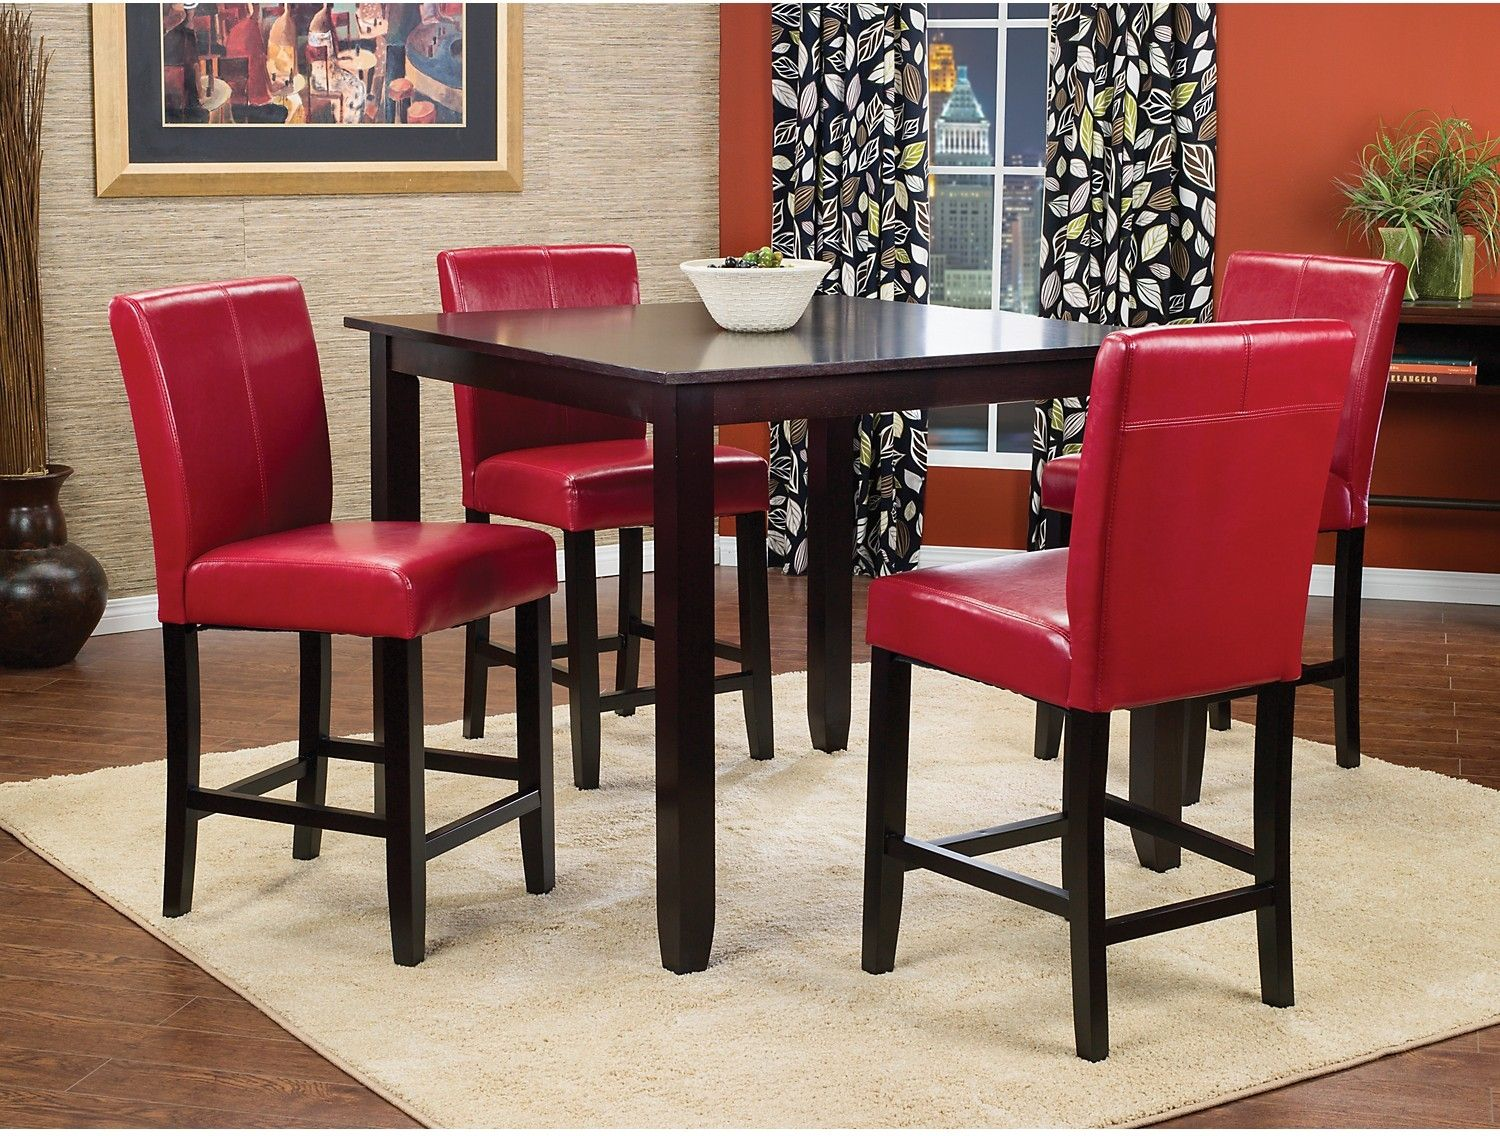 red kitchen table set chili pepper decorating themes nicole 5 piece counter height dining package with